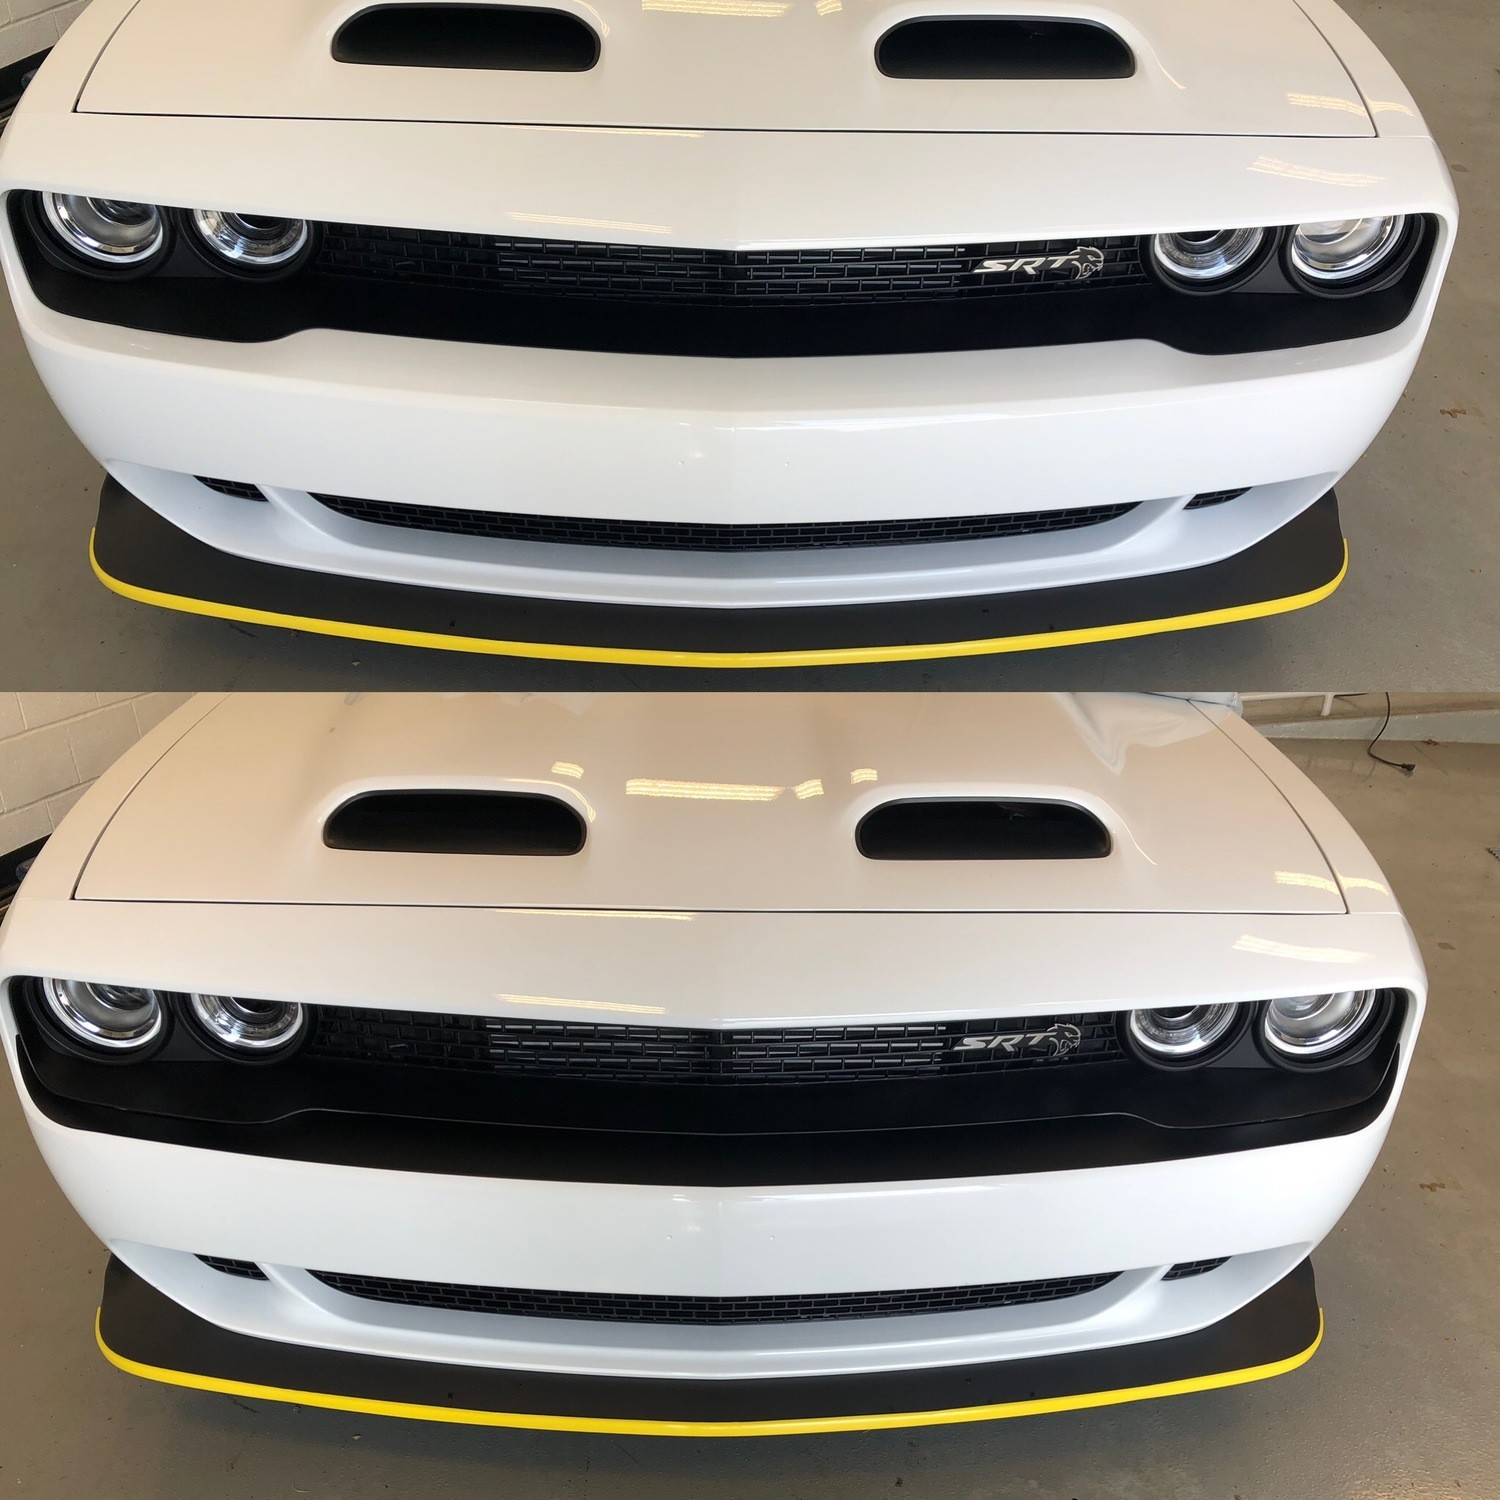 2015 - Up Dodge Challenger RT SXT GT Hellcat Bumper Blackout Decals Front and Rear Kit